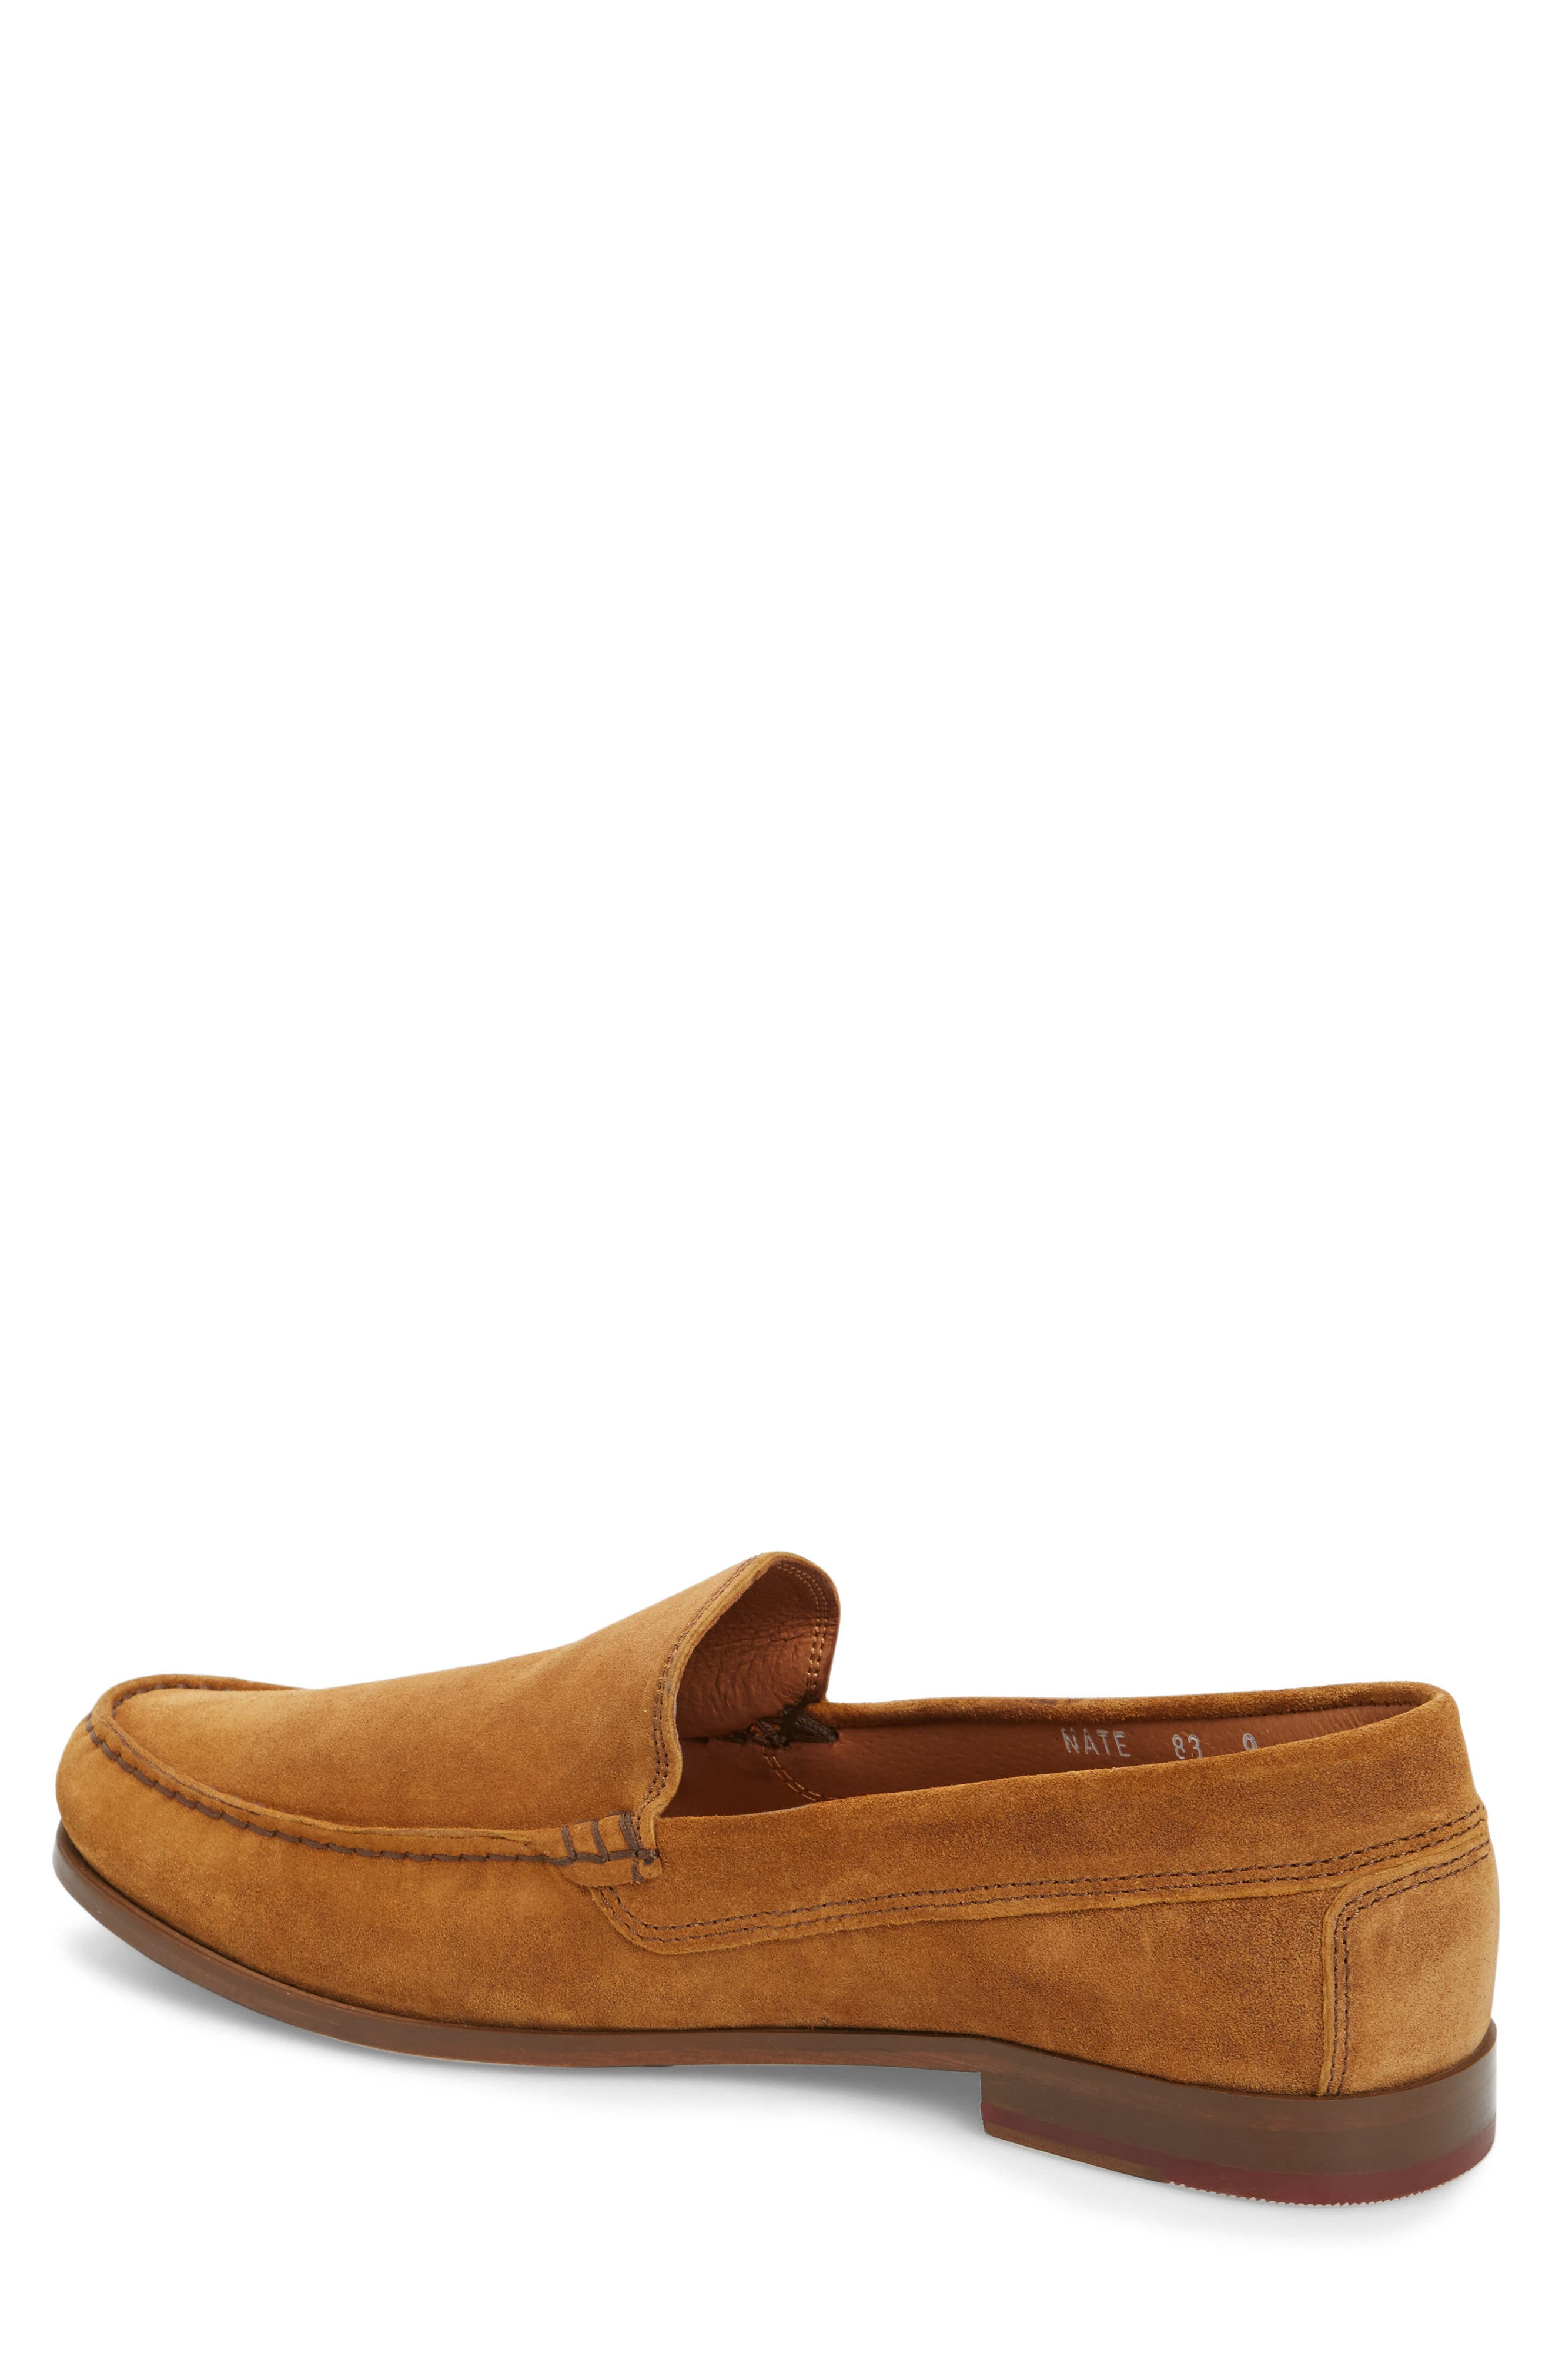 Donald J Pliner 'Nate' Loafer,                             Alternate thumbnail 8, color,